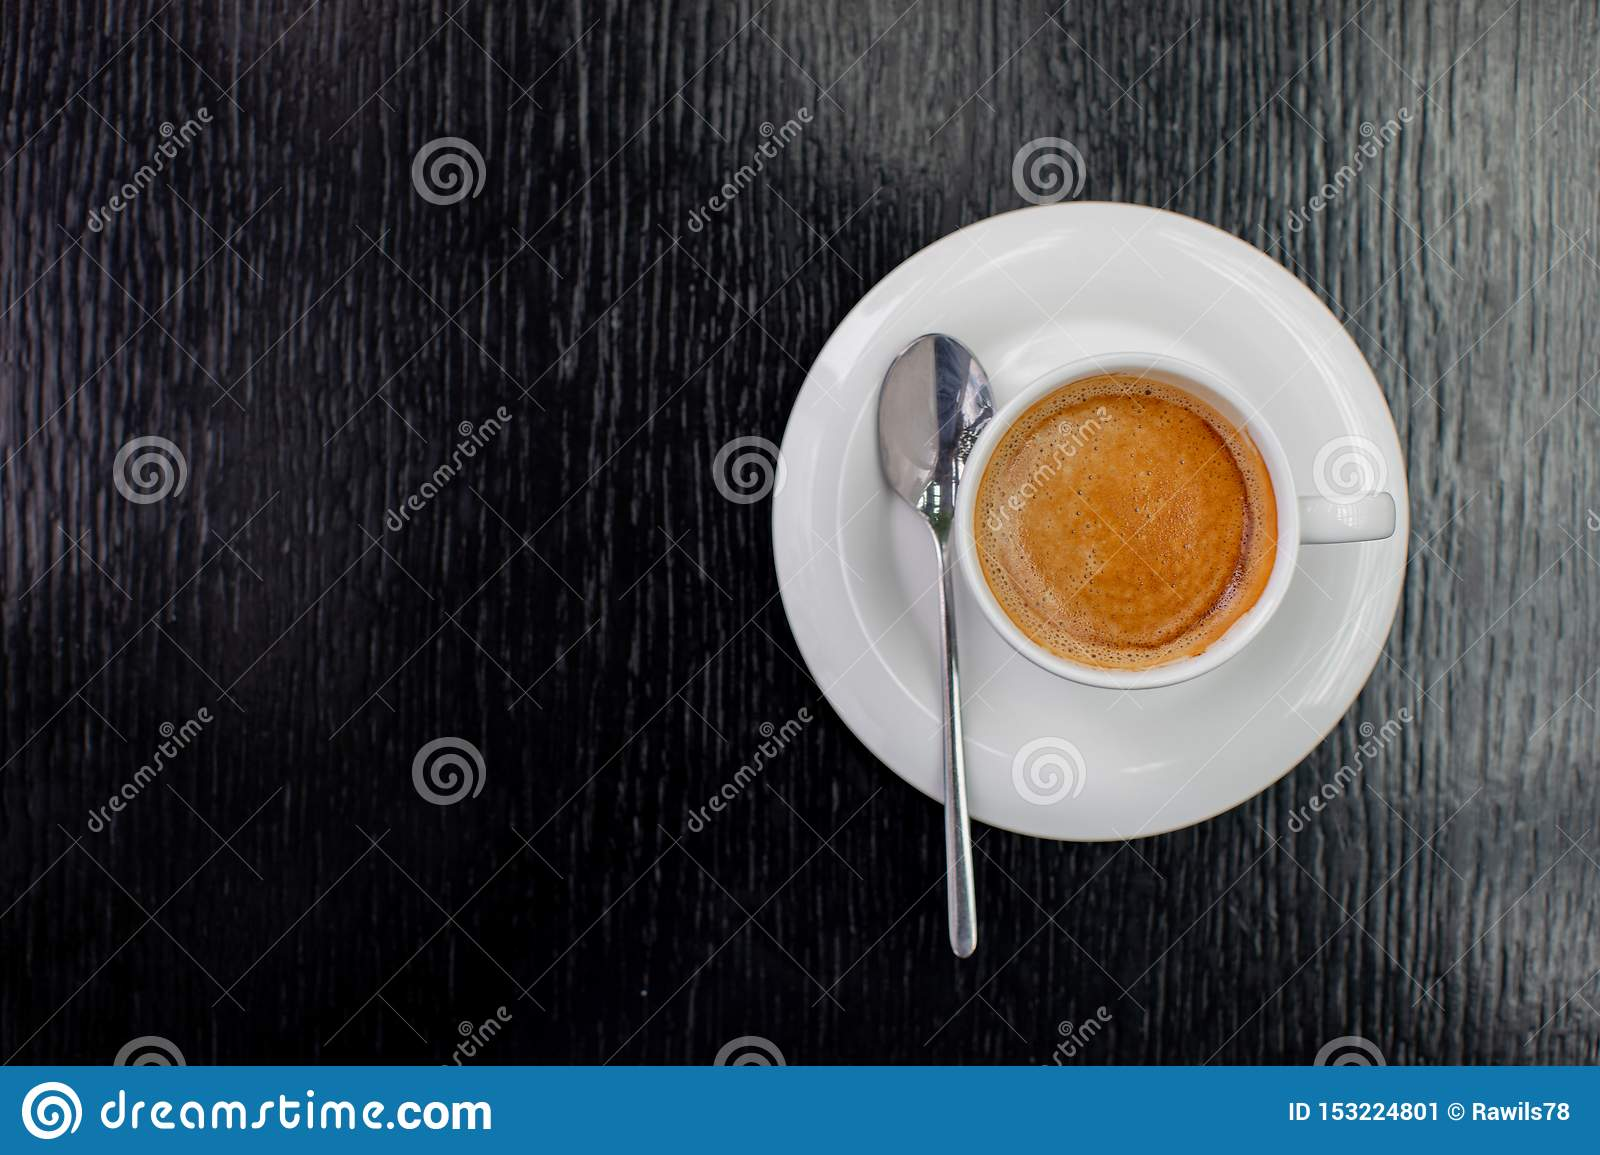 White Cup of cappuccino or expresso coffee with foam on the table in a cafe with a spoon